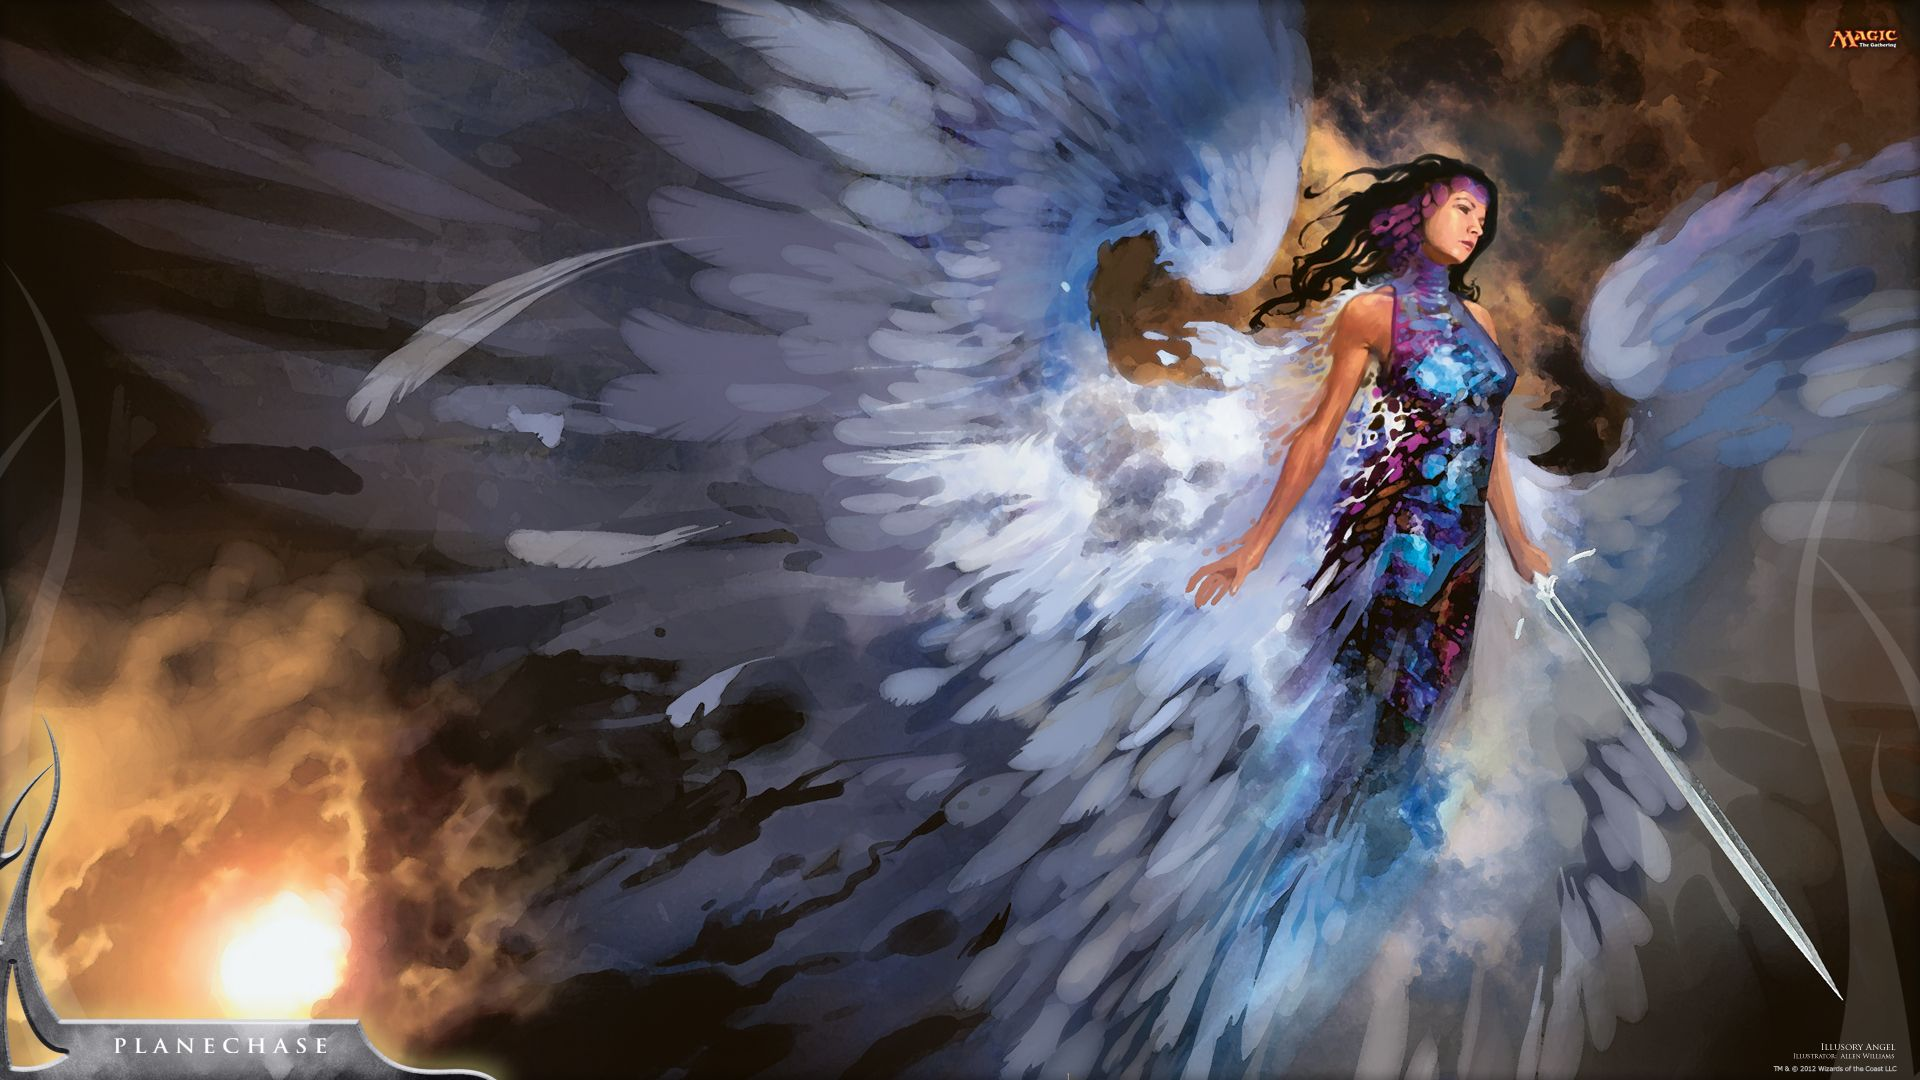 Of Wizards and Angels: A supernatural fantasy